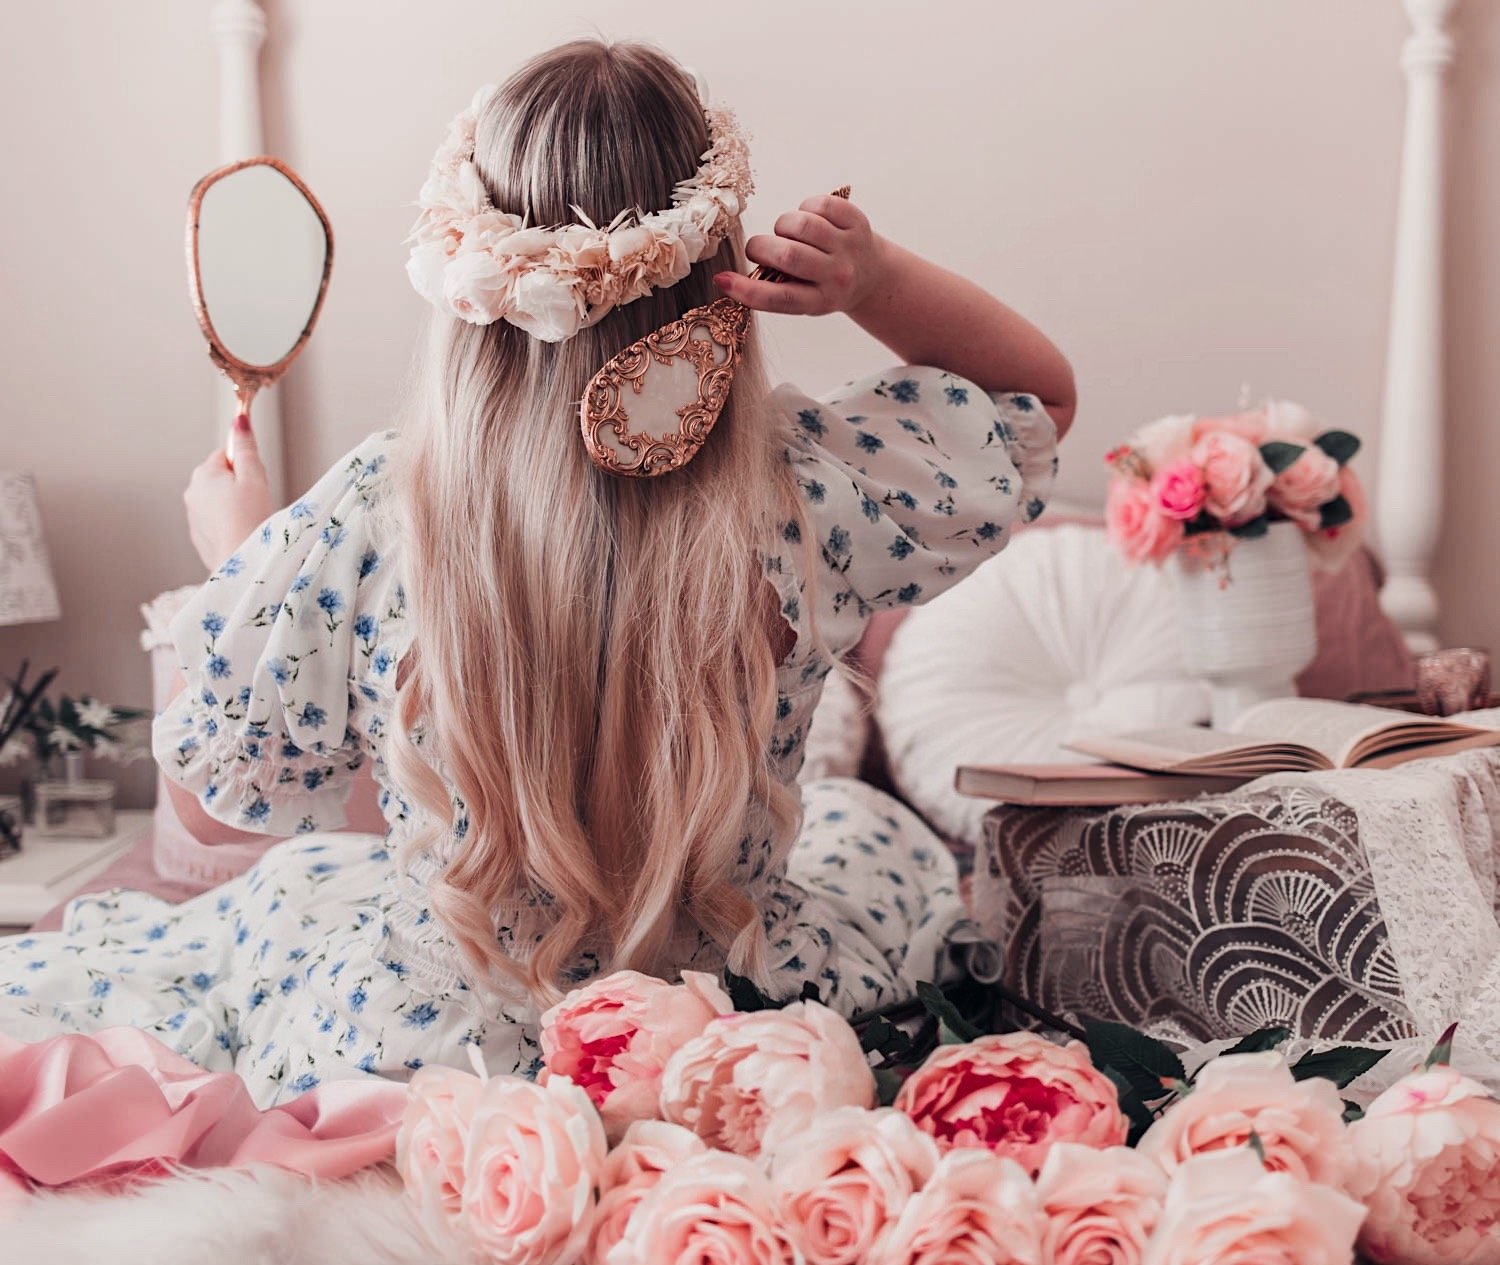 Fashion blogger Elizabeth Hugen wears a Les Couronnes flower crown and Sister Jane floral dress